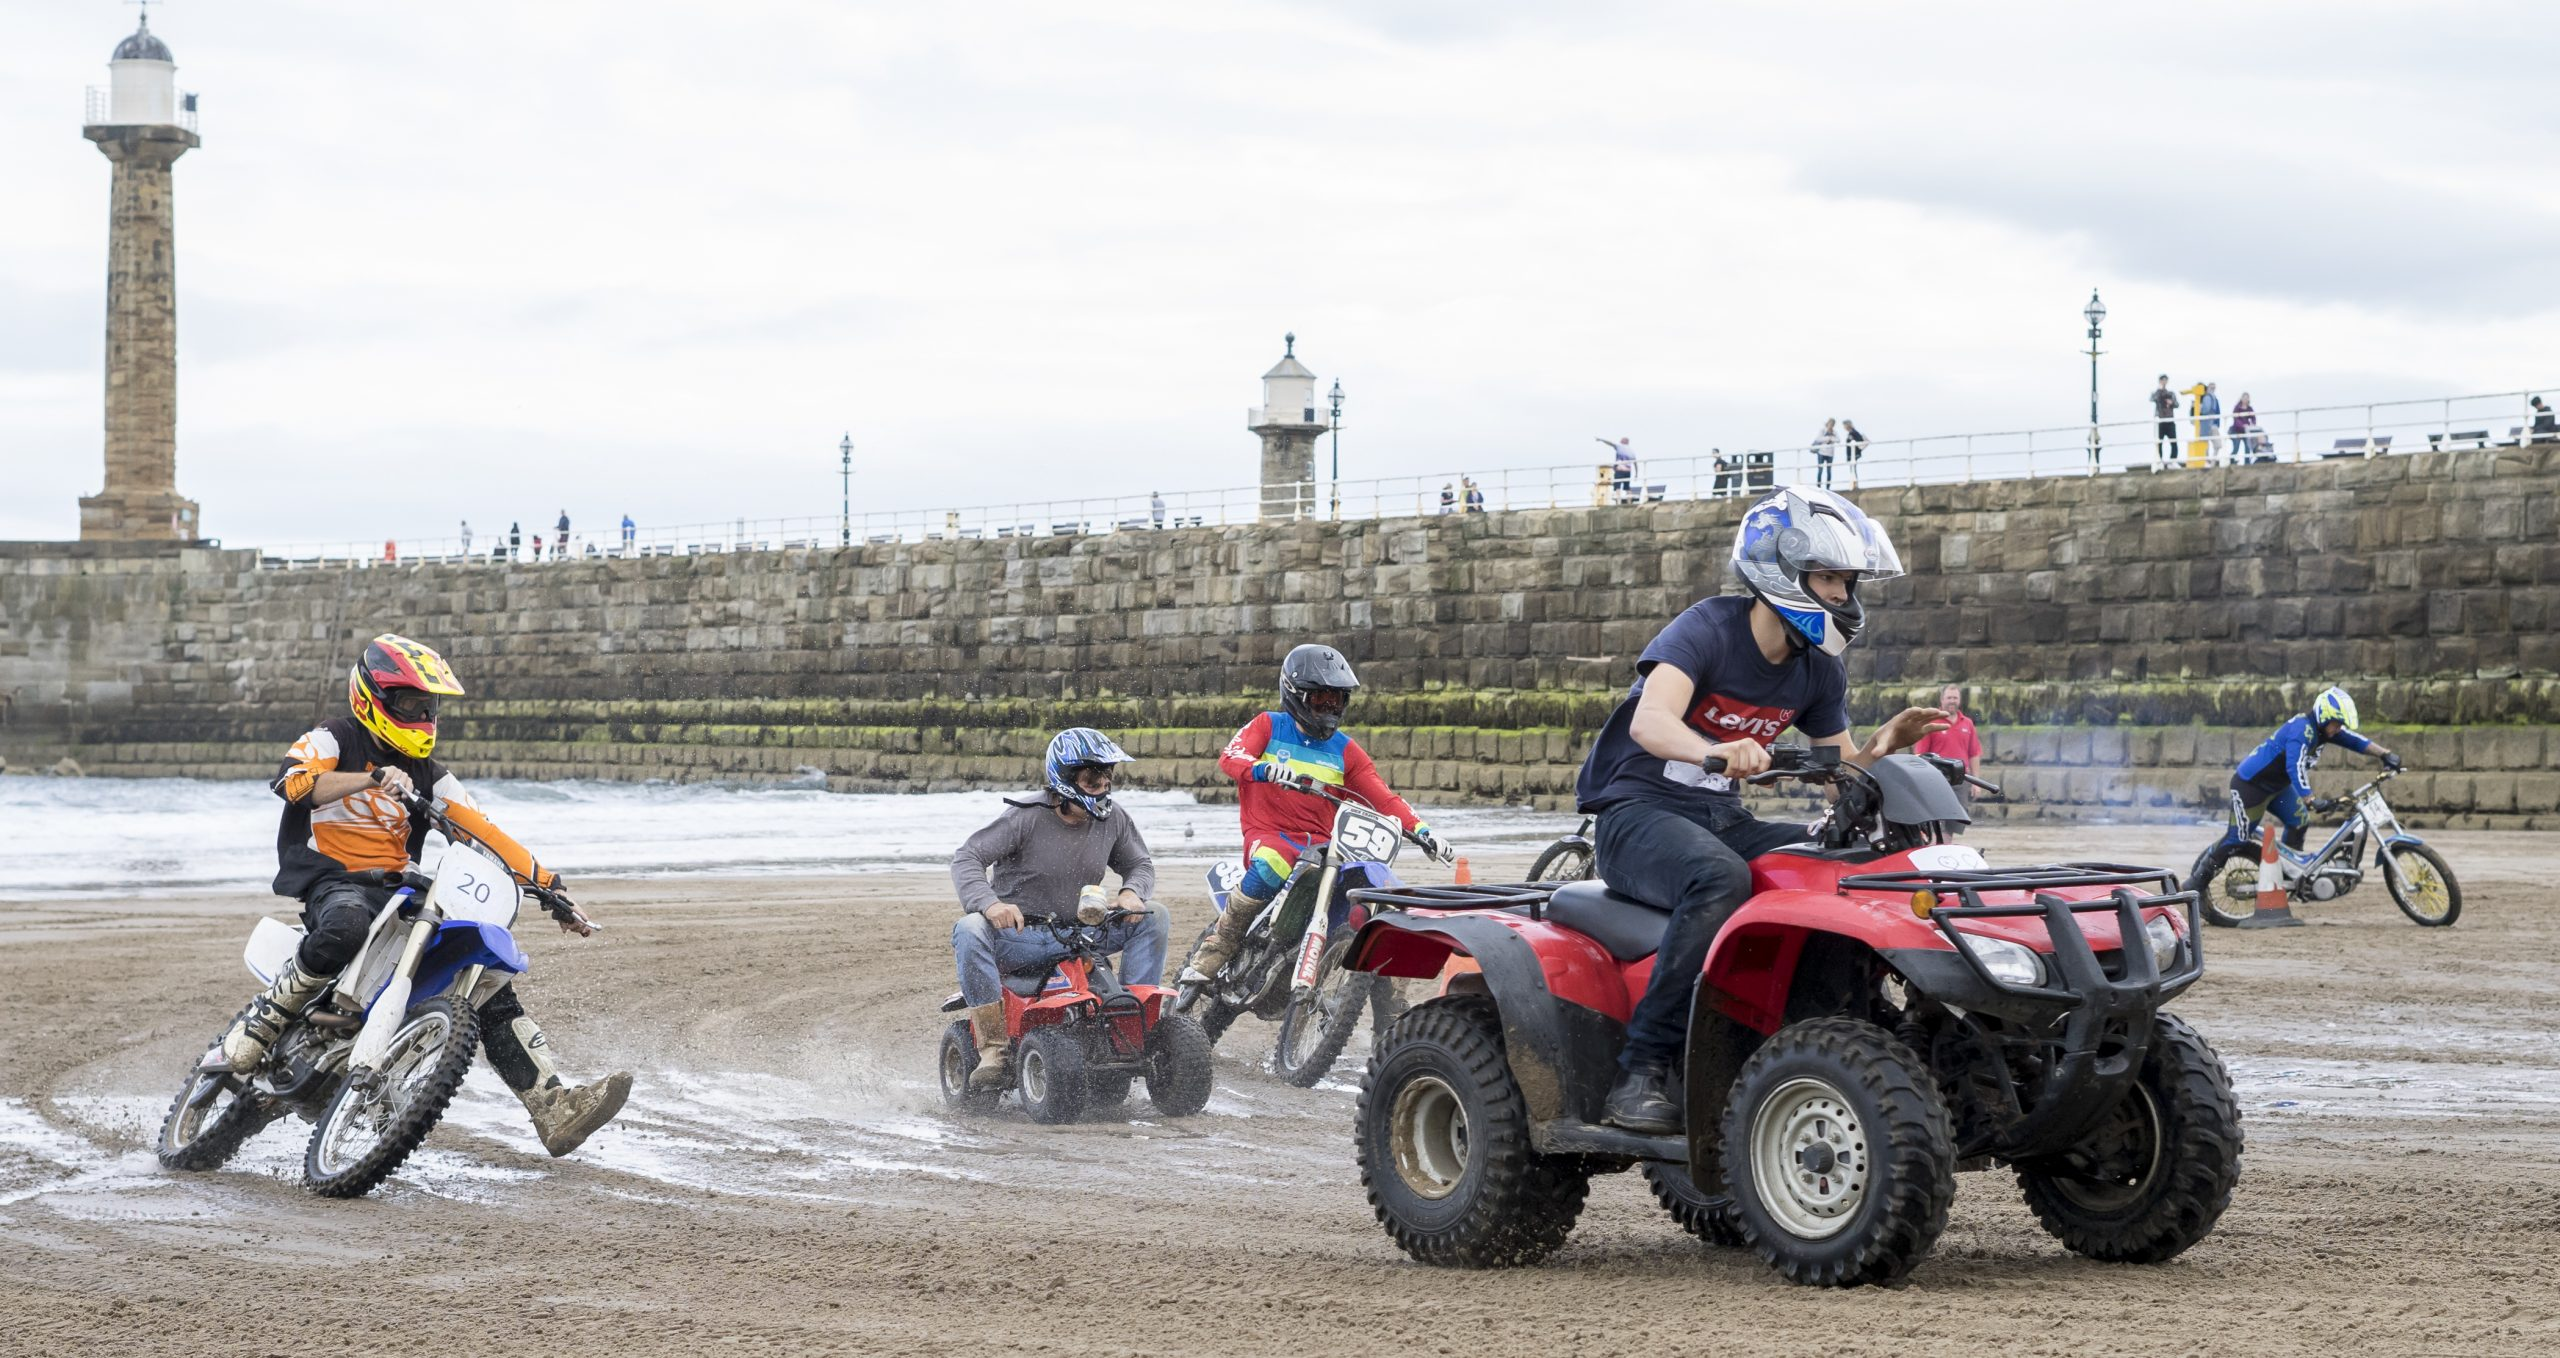 motor bikes racing on Whitby beach